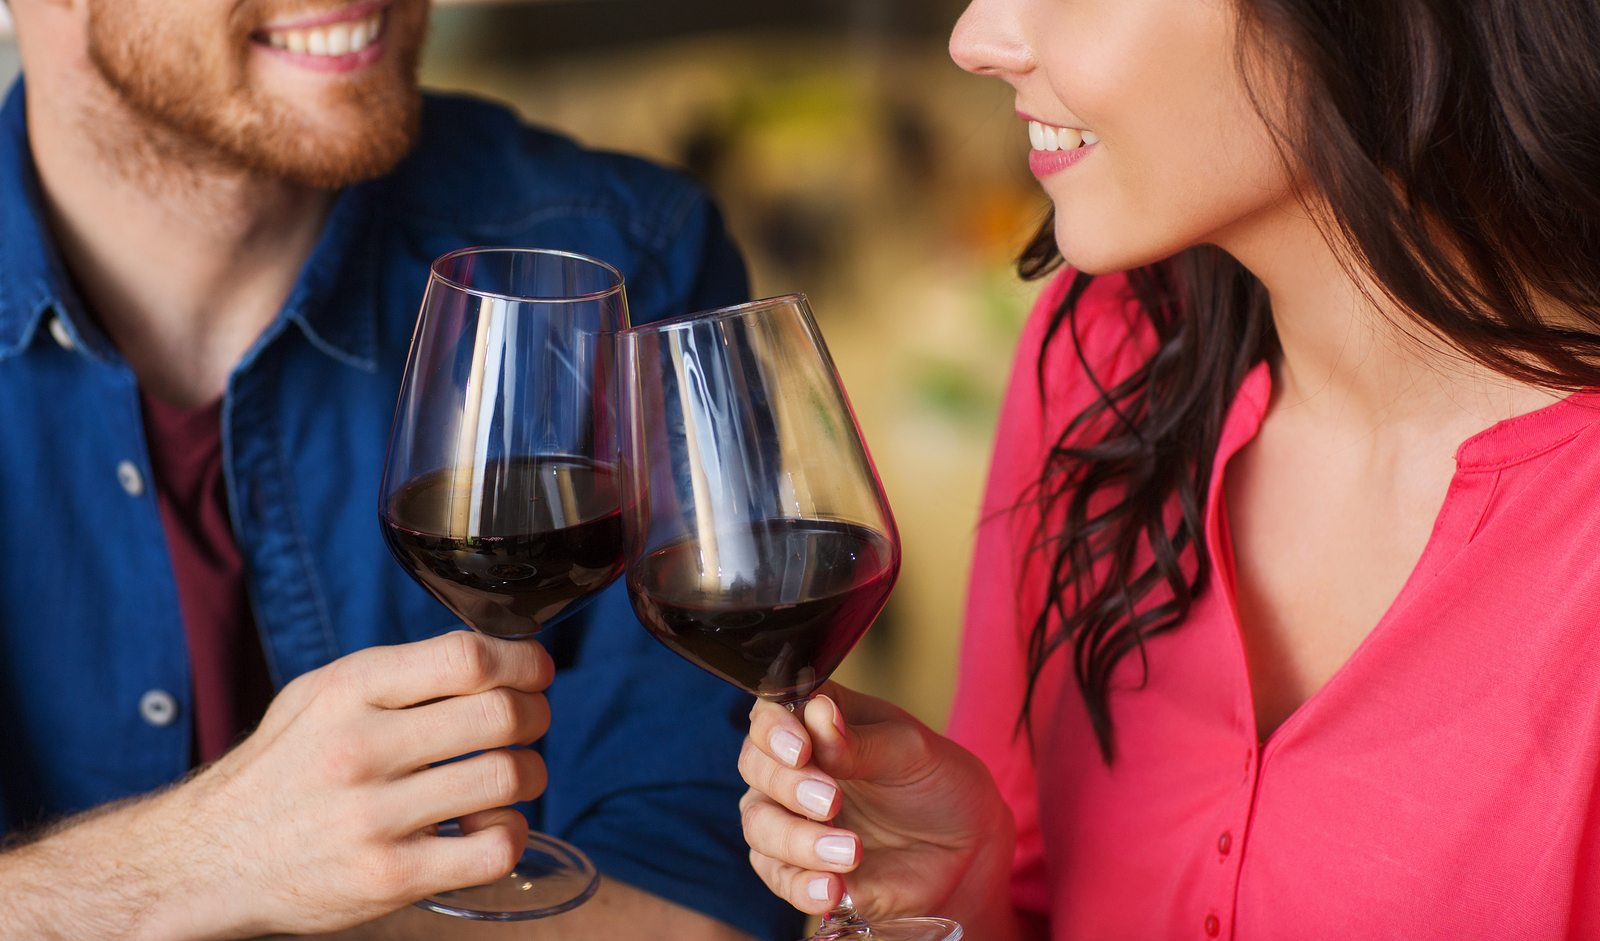 leisure, celebration, food and drinks, people and holidays concept - smiling couple having dinner and drinking red wine at date in restaurant